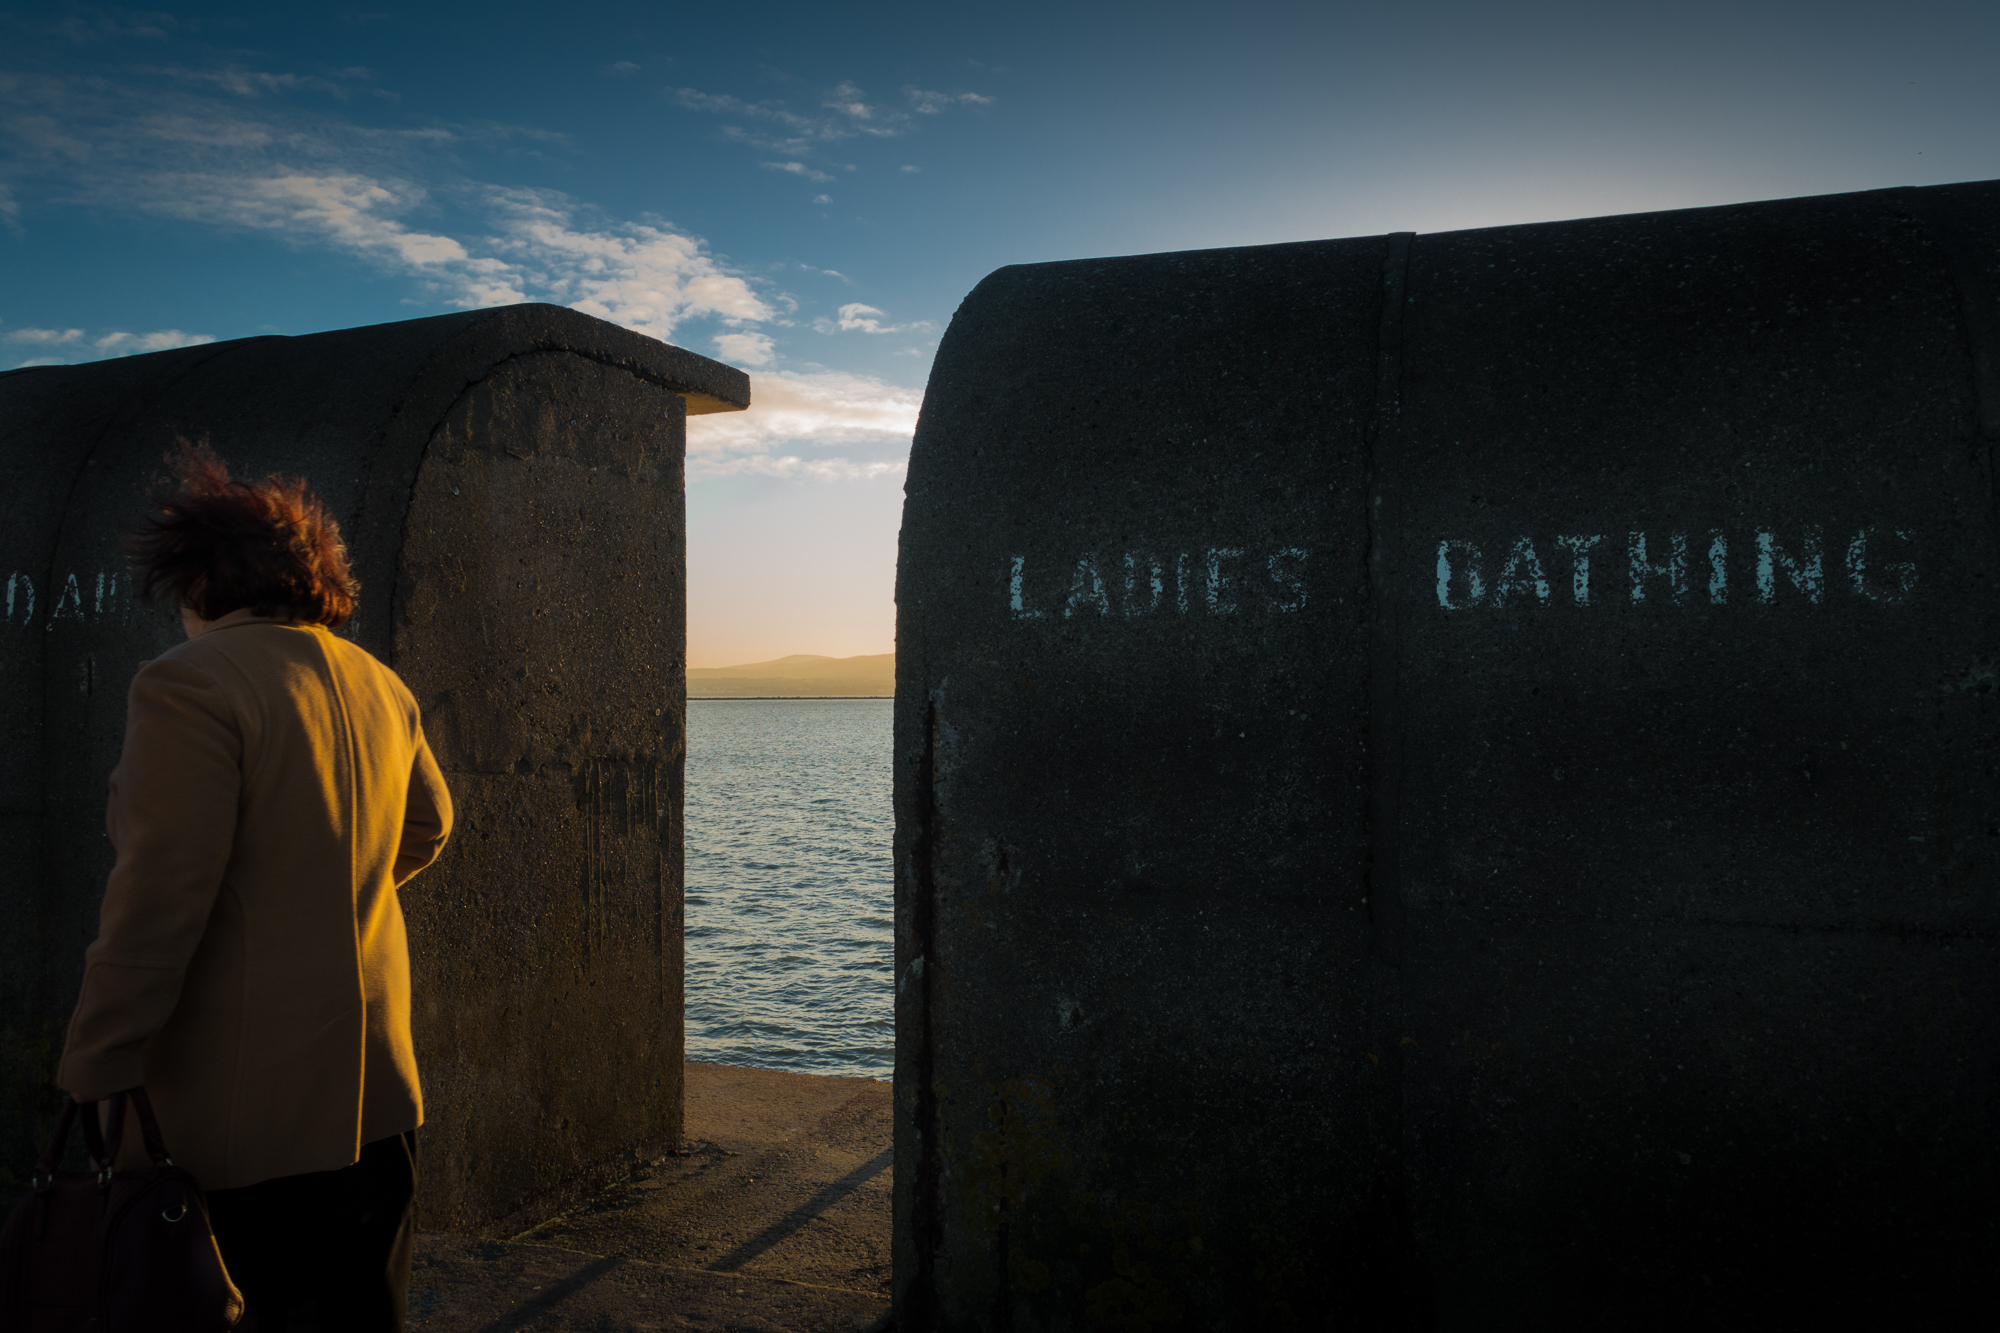 Lady bathing shelters